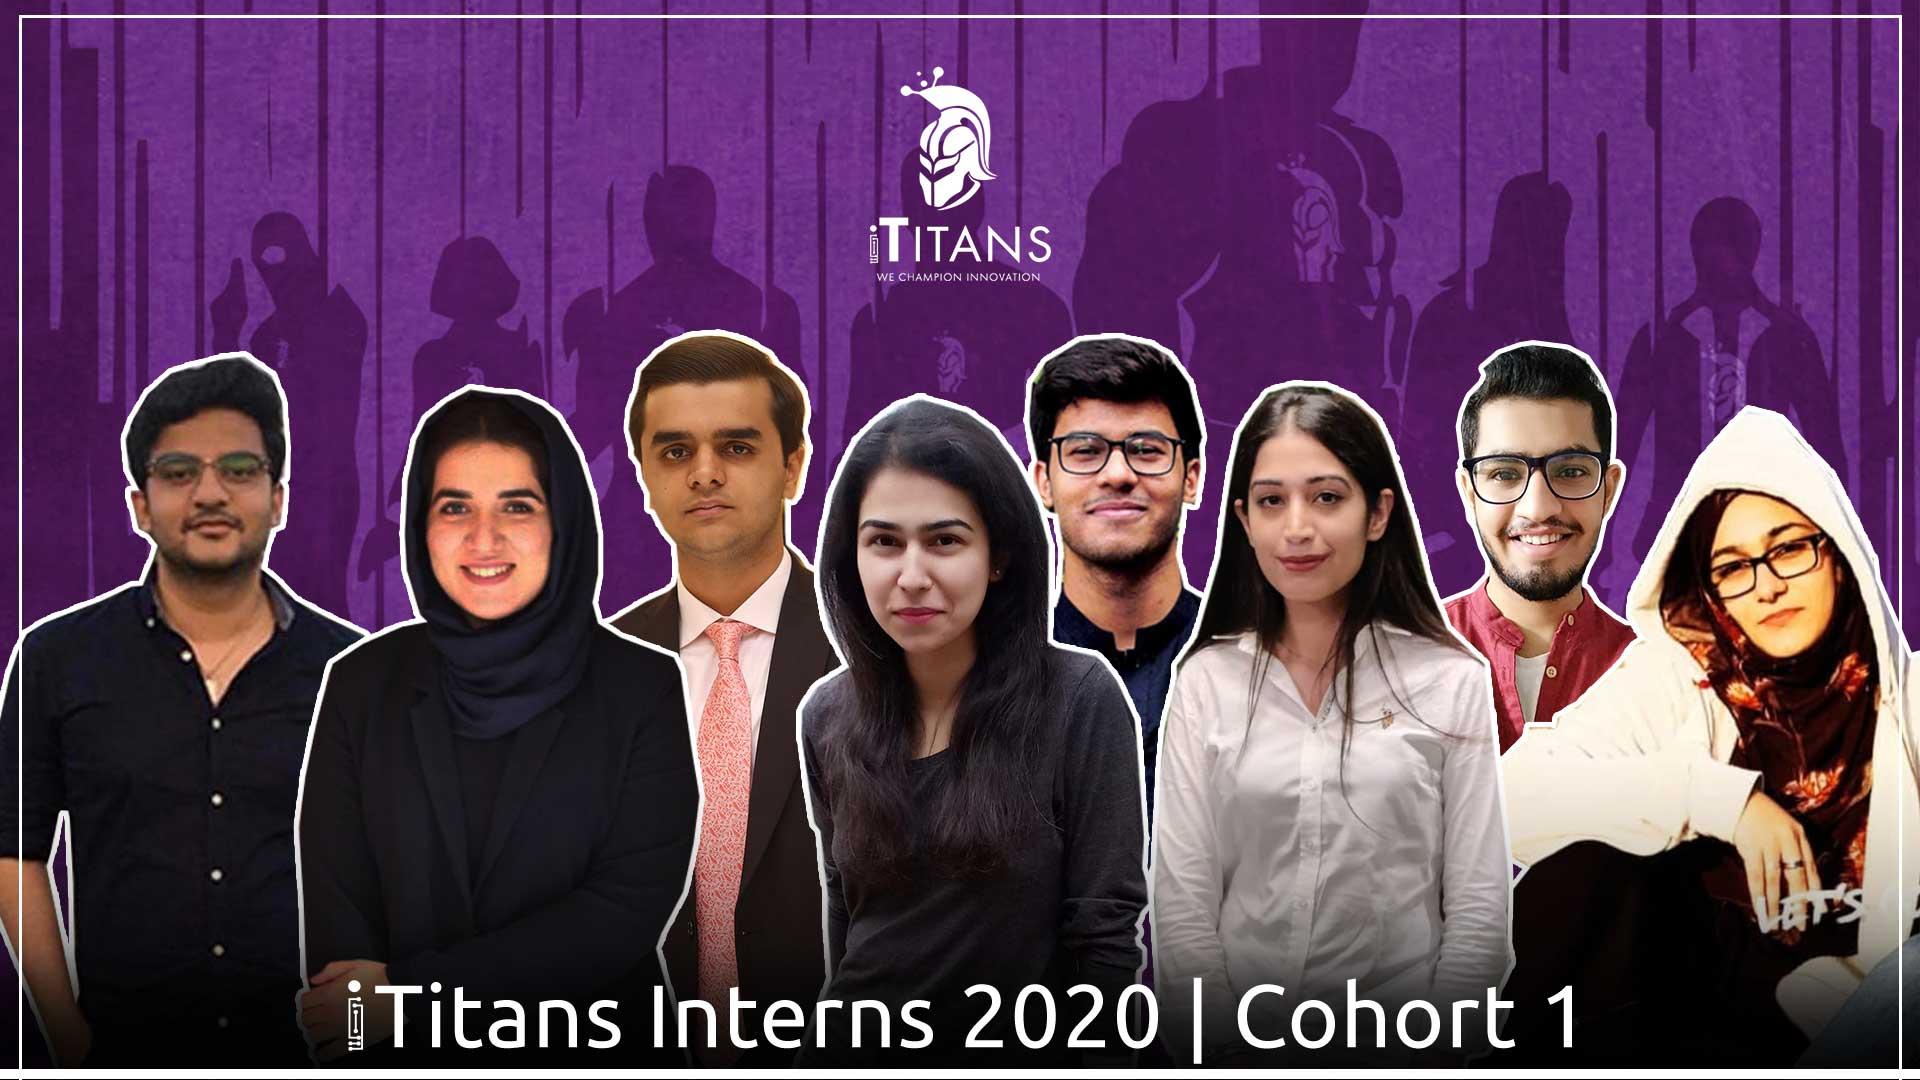 iTitans Interns 2020 Official Video Released